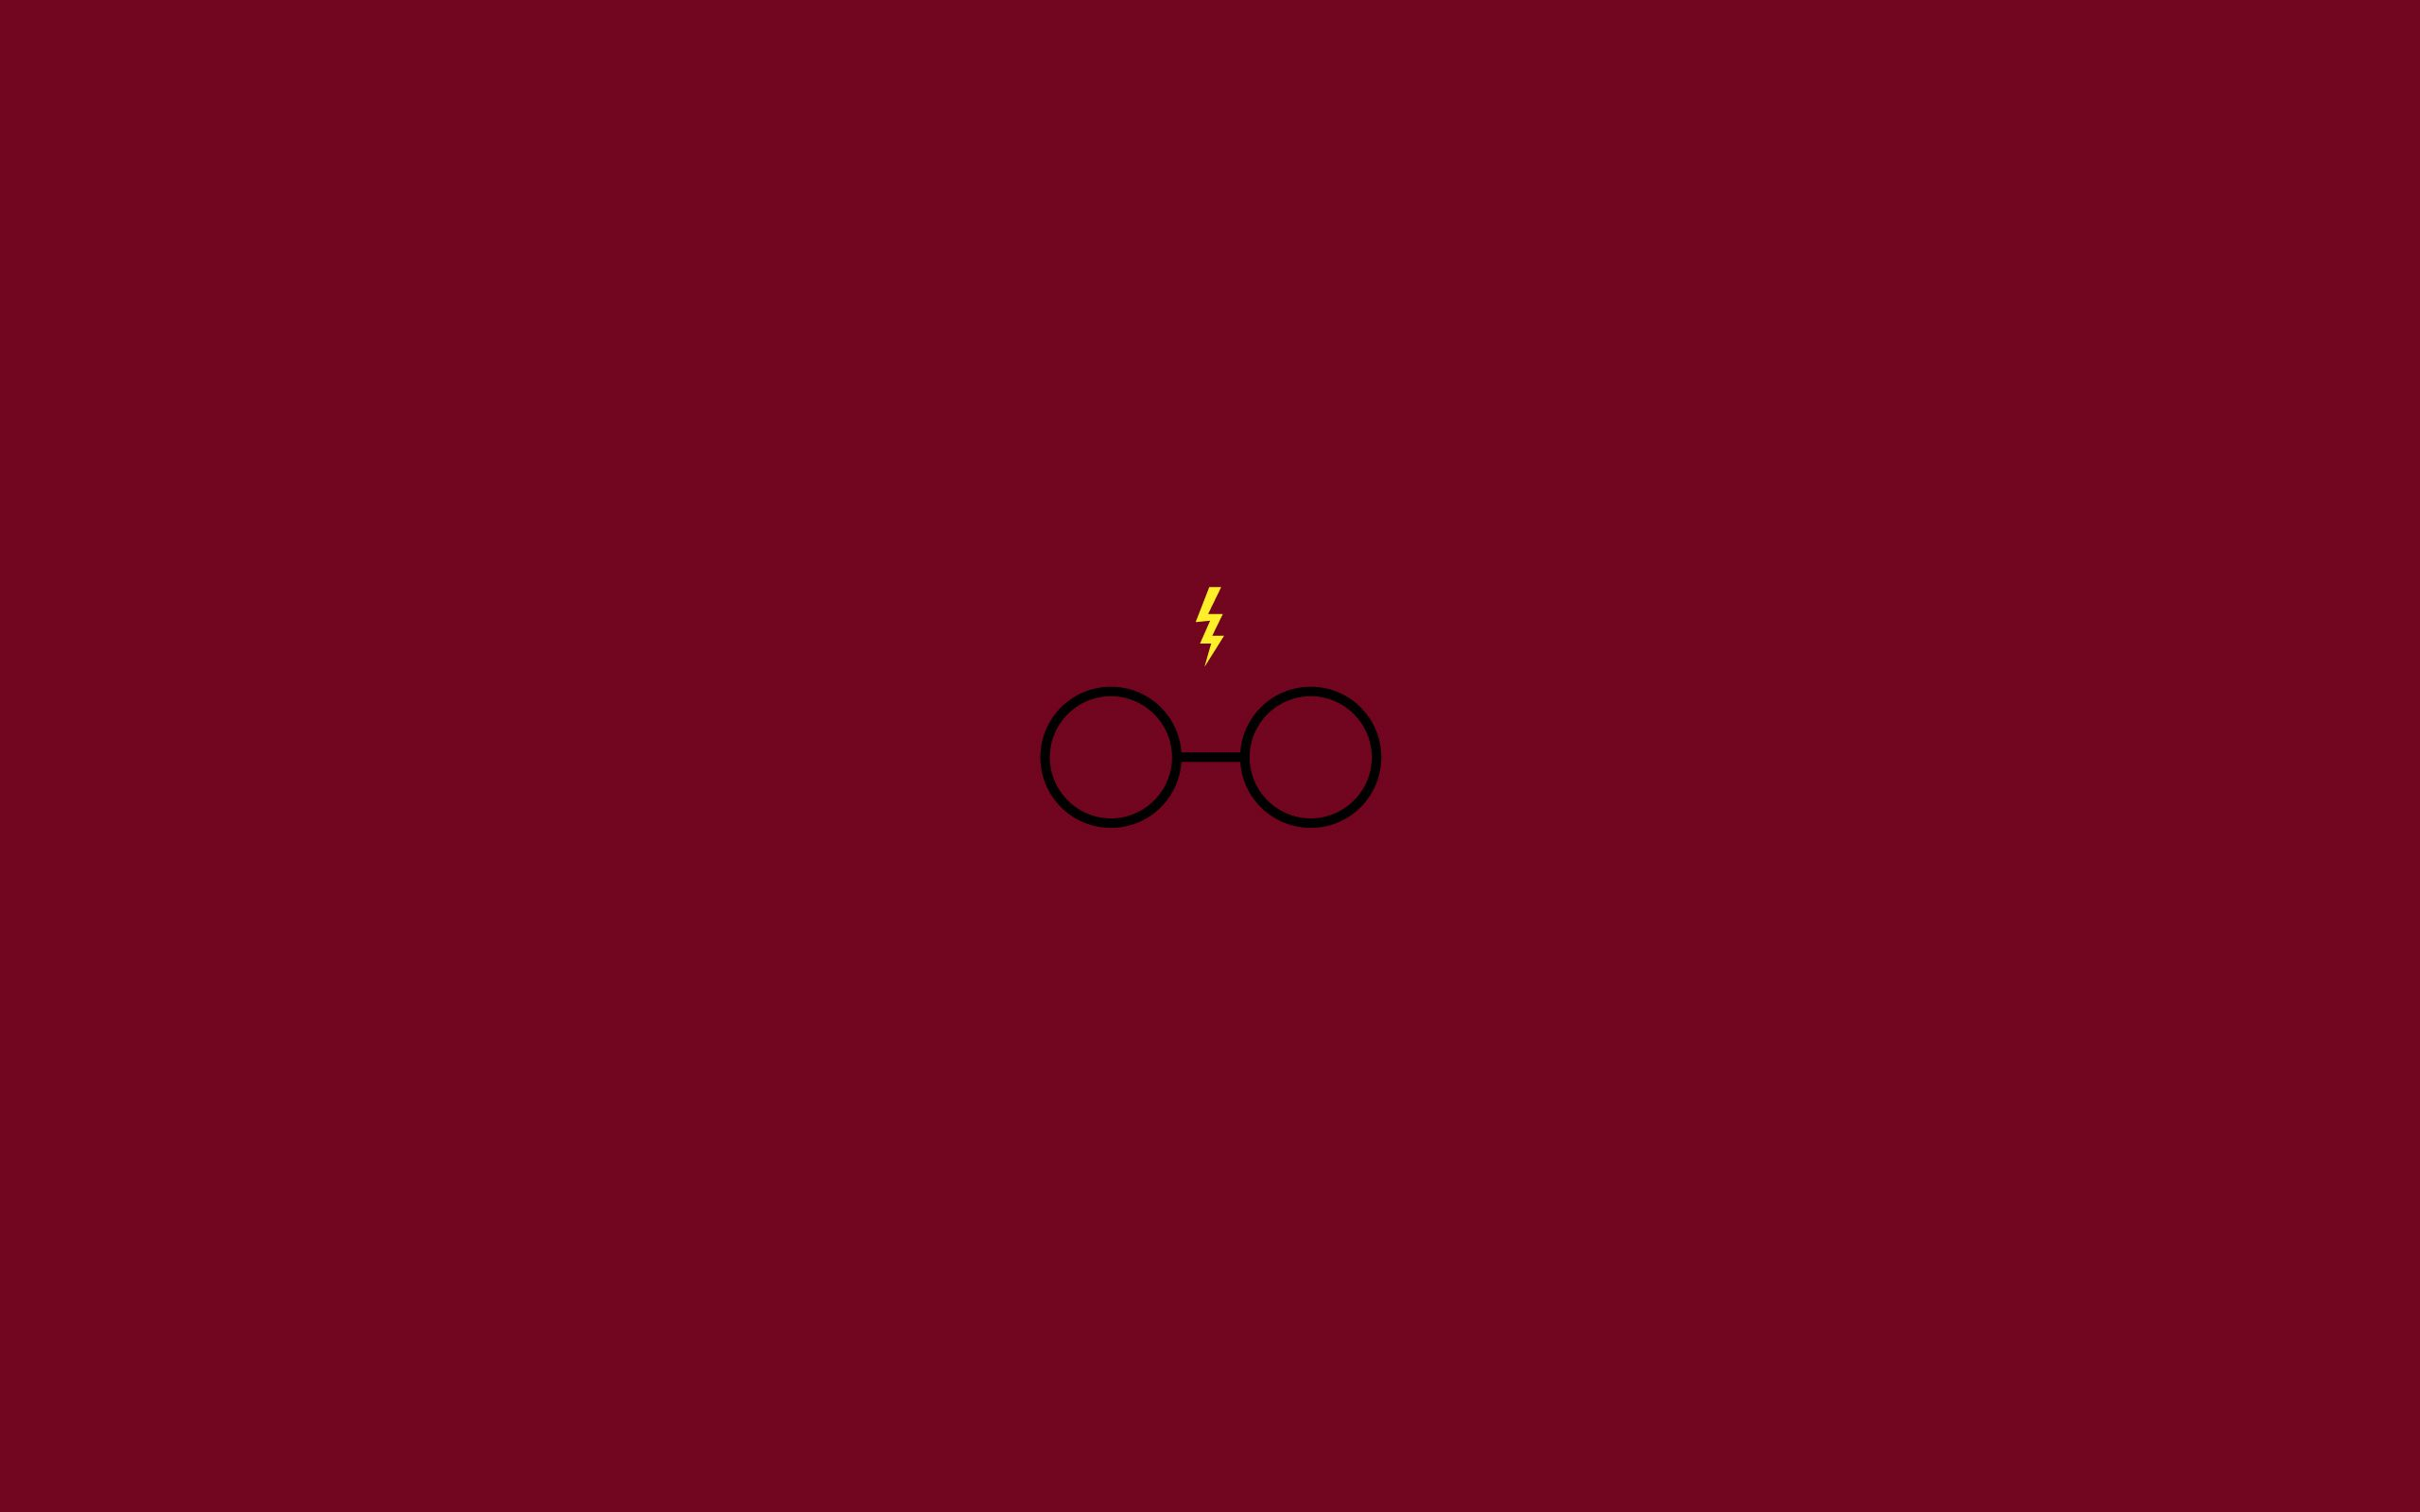 Hipster Harry Potter Wallpapers Top Free Hipster Harry